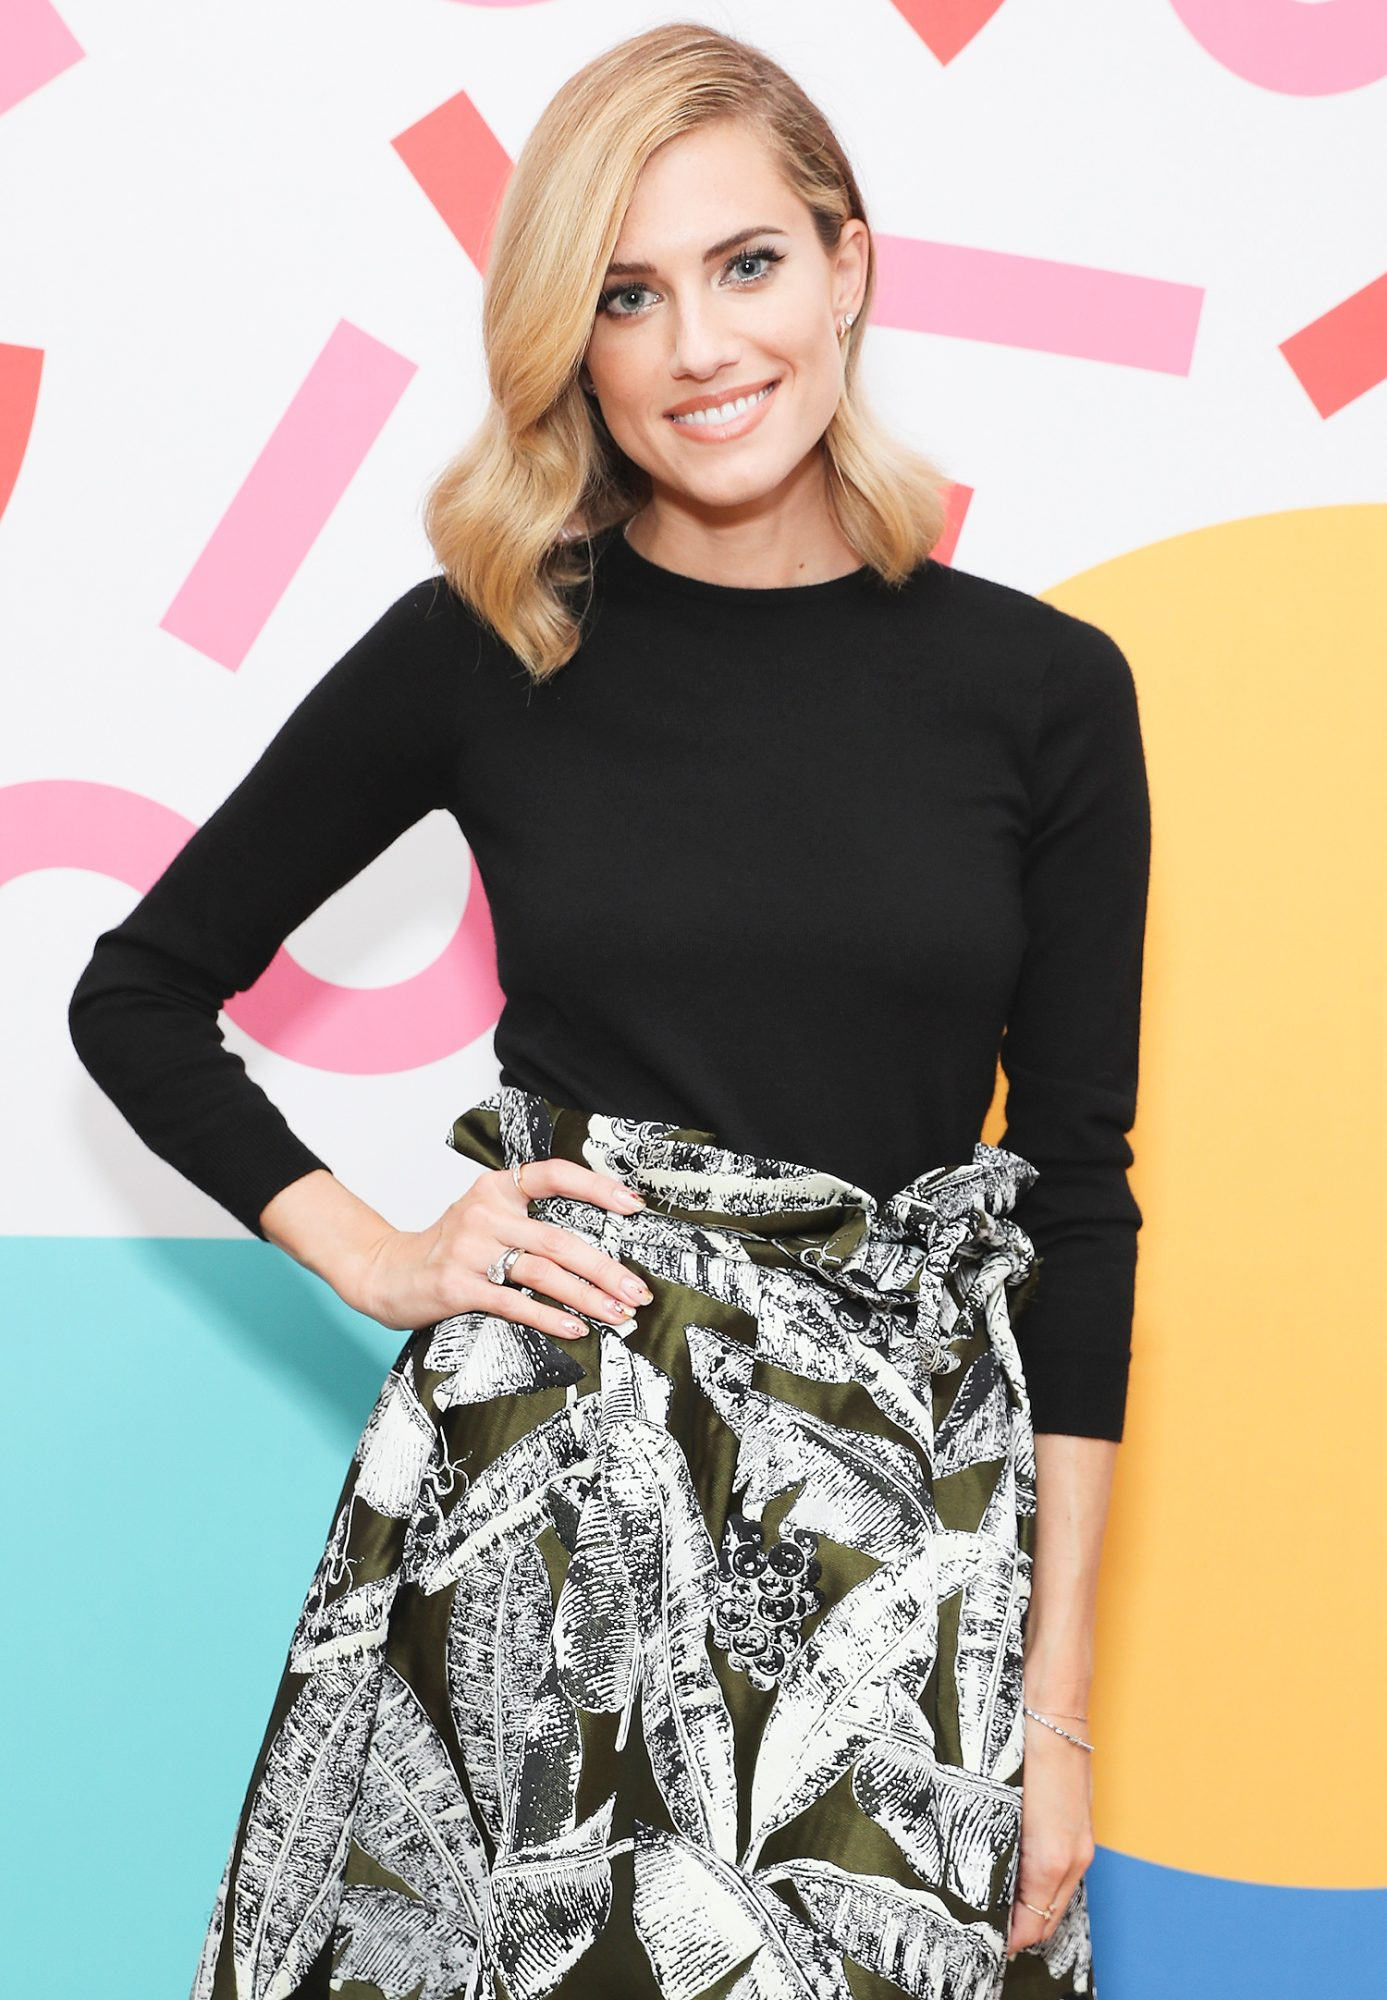 Brit + Co Kicks Off Experiential Pop-Up #CreateGood With Allison Williams And Daphne Oz